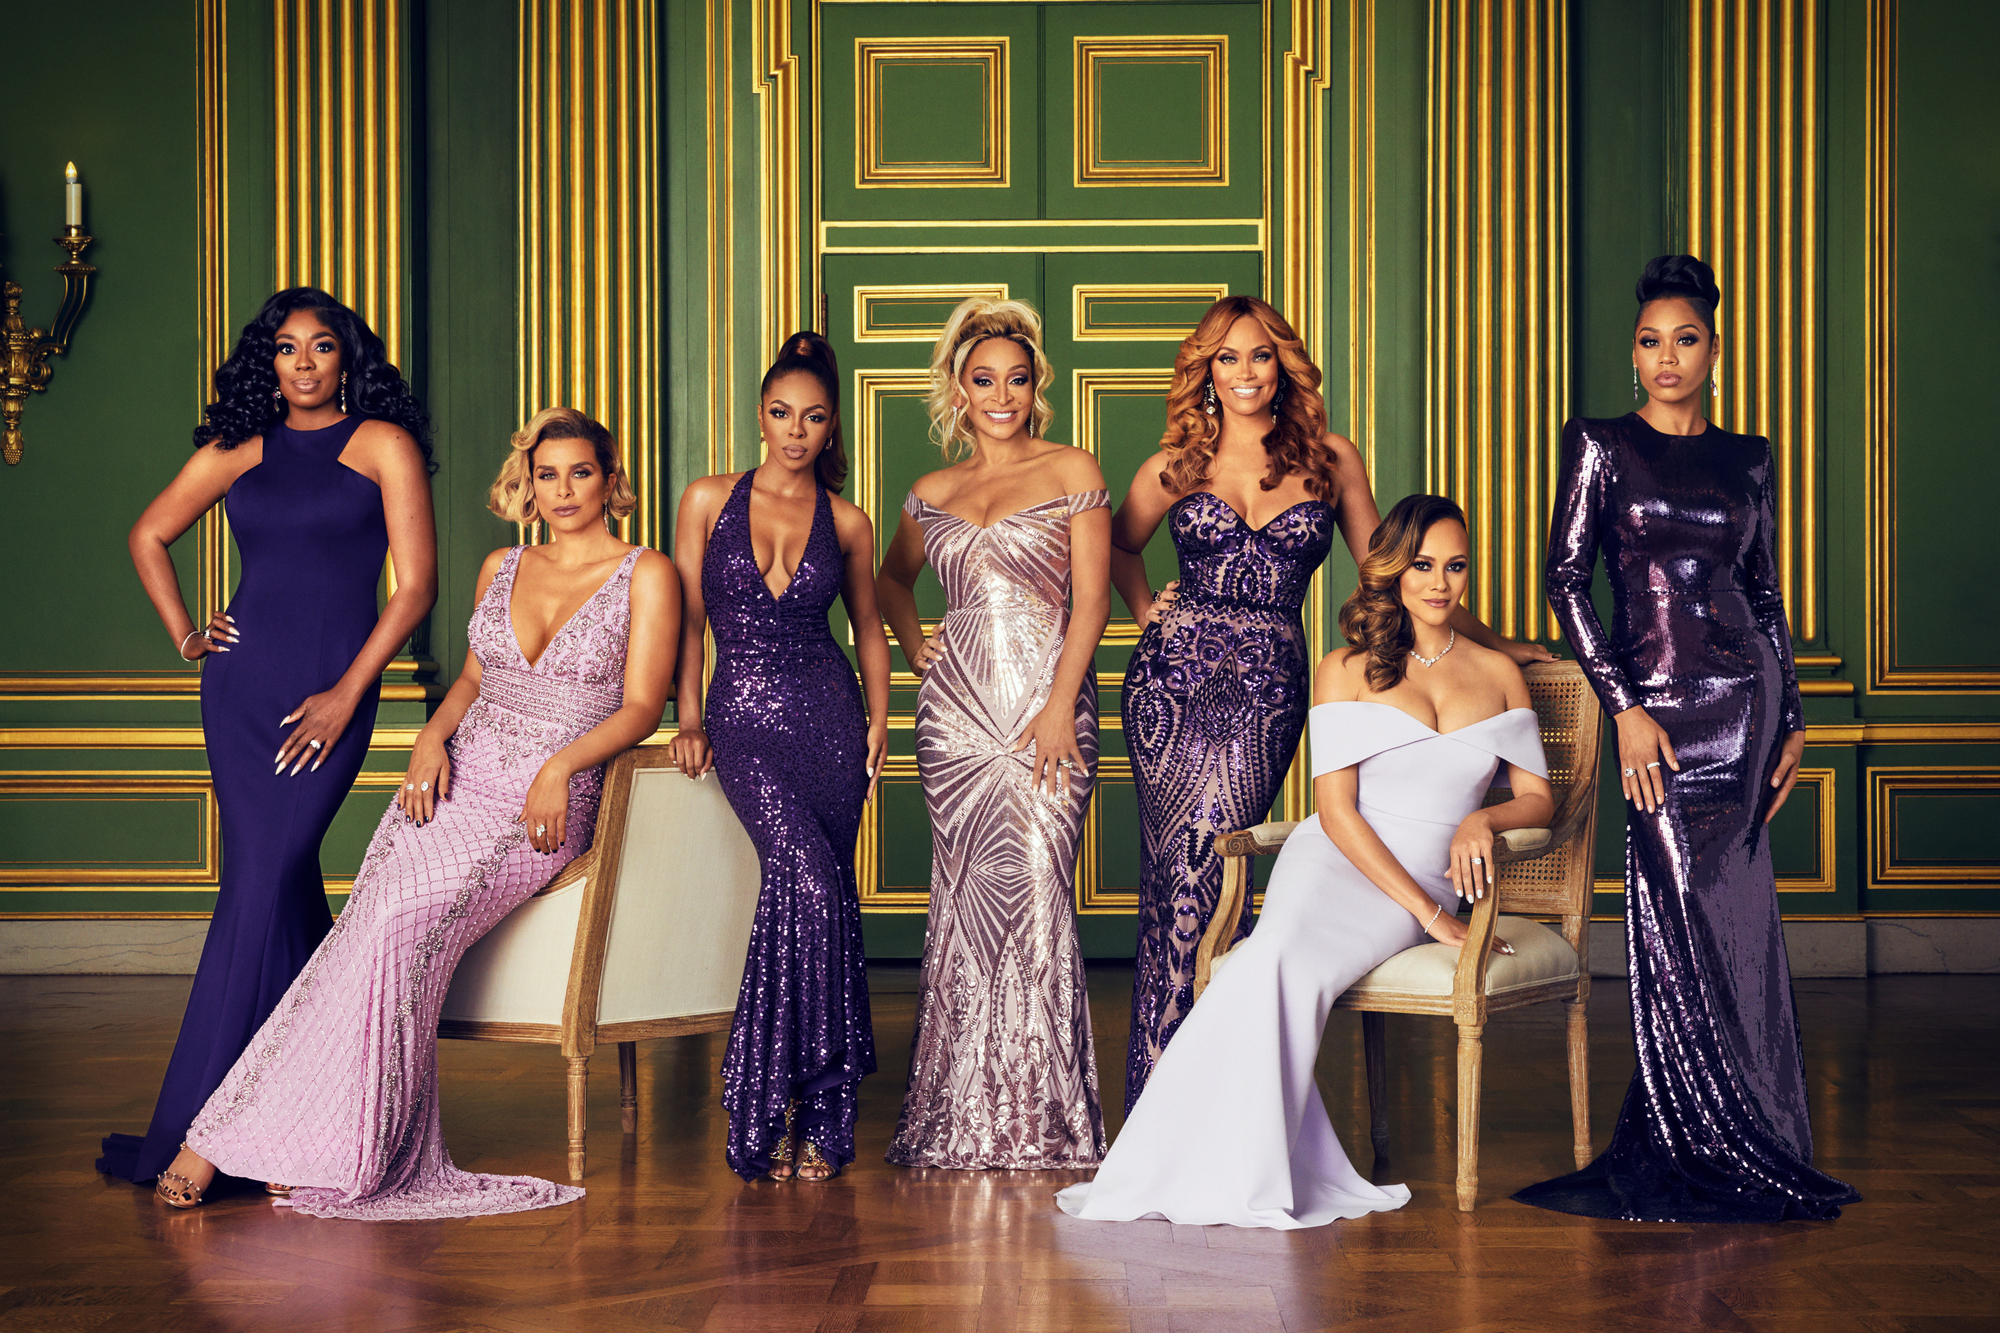 Real Housewives of Potomac Robyn Dixon Reacts to Wendy Osefo's Recent Shade!